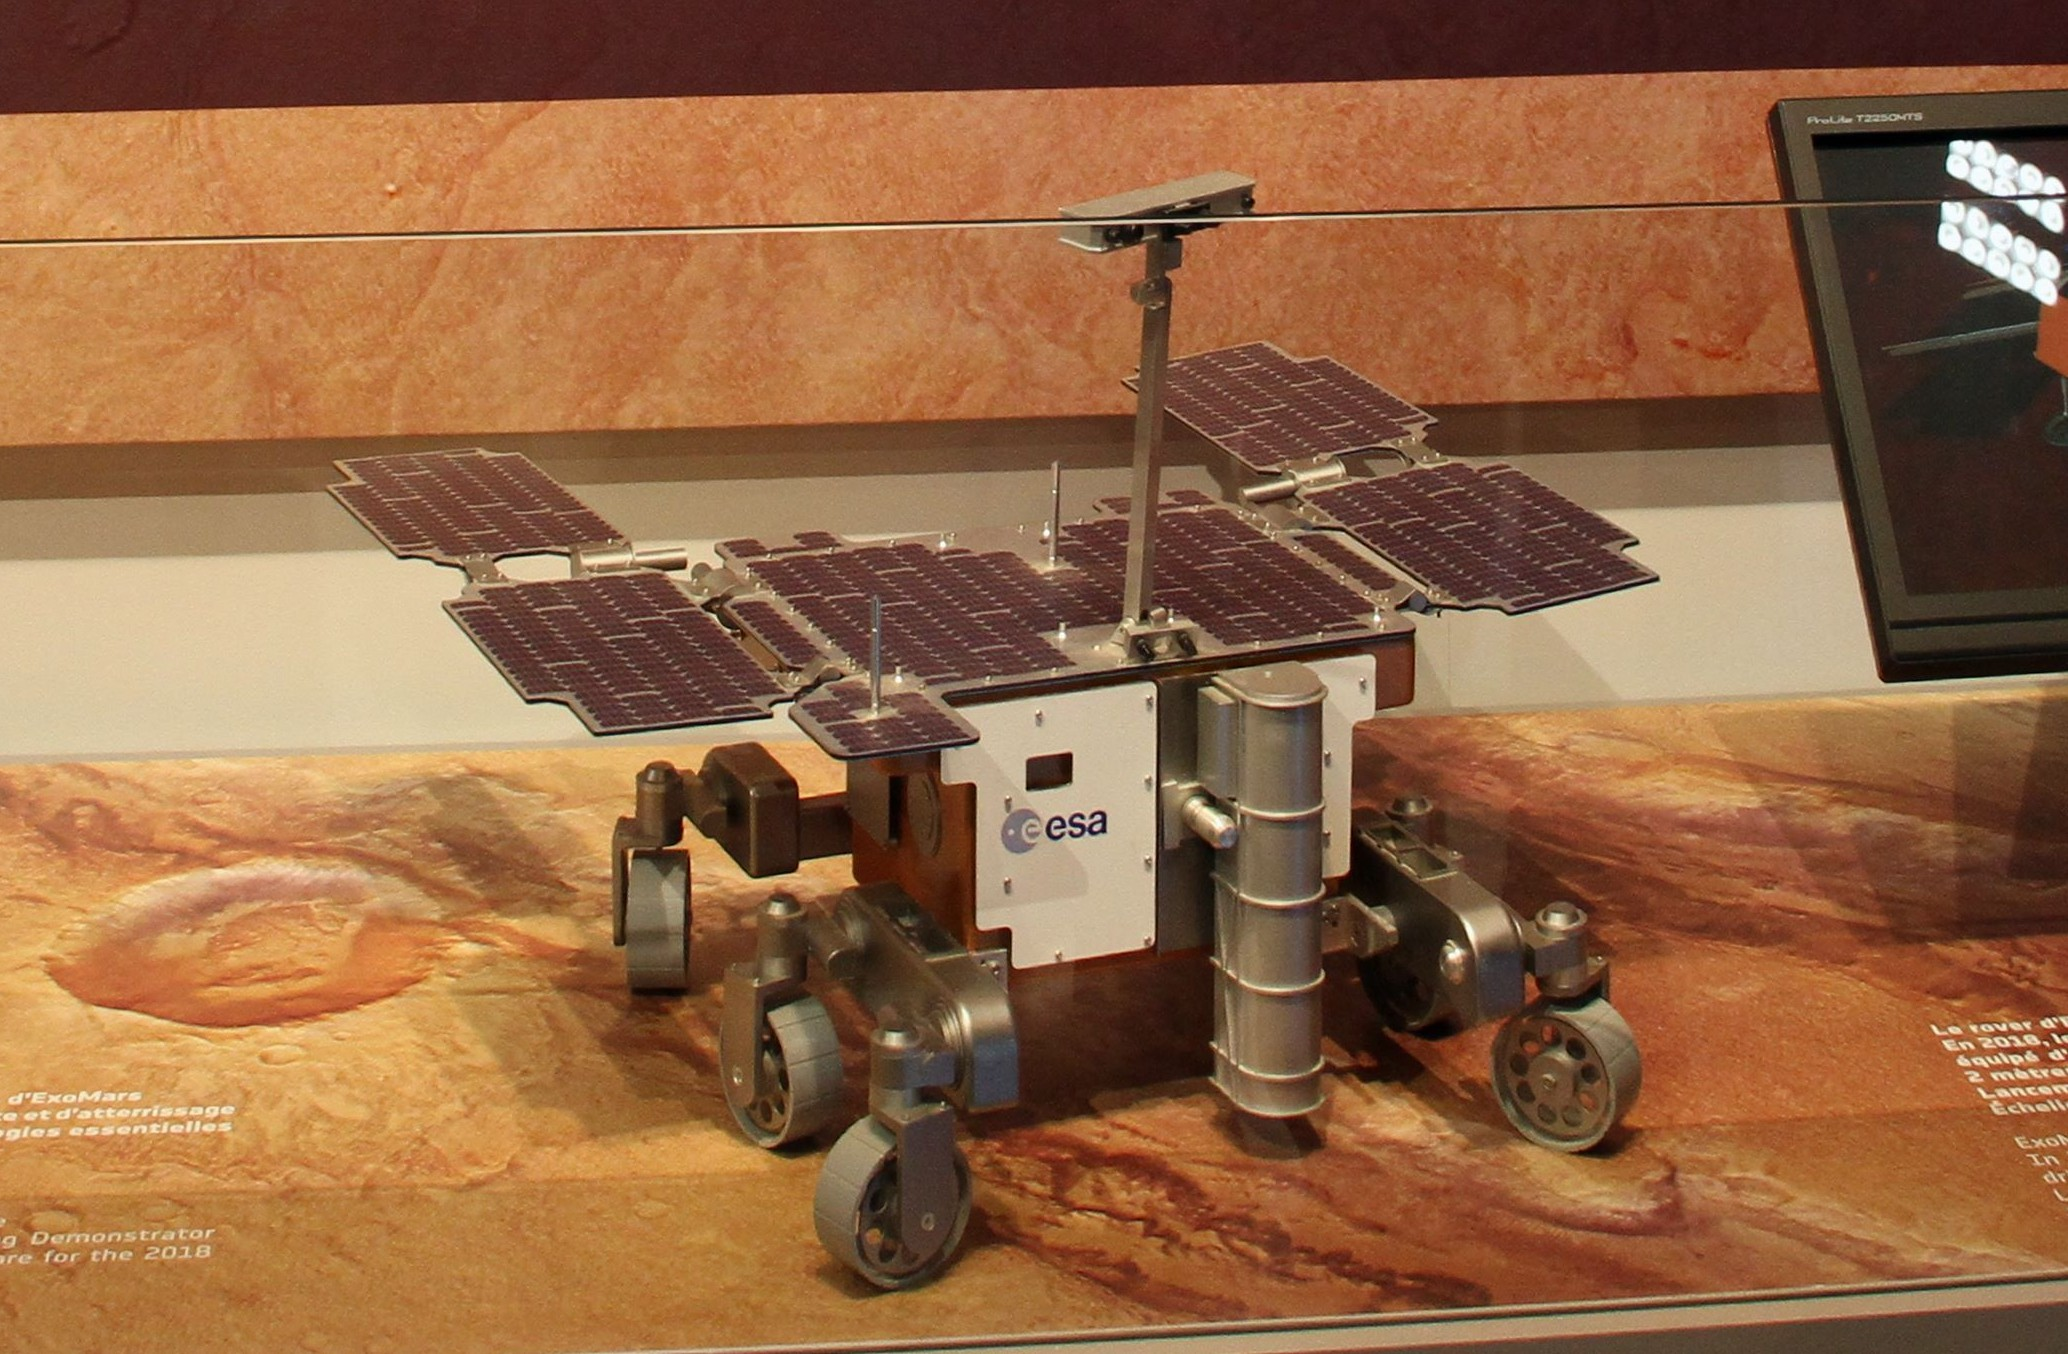 Rover ExoMars le Bourget